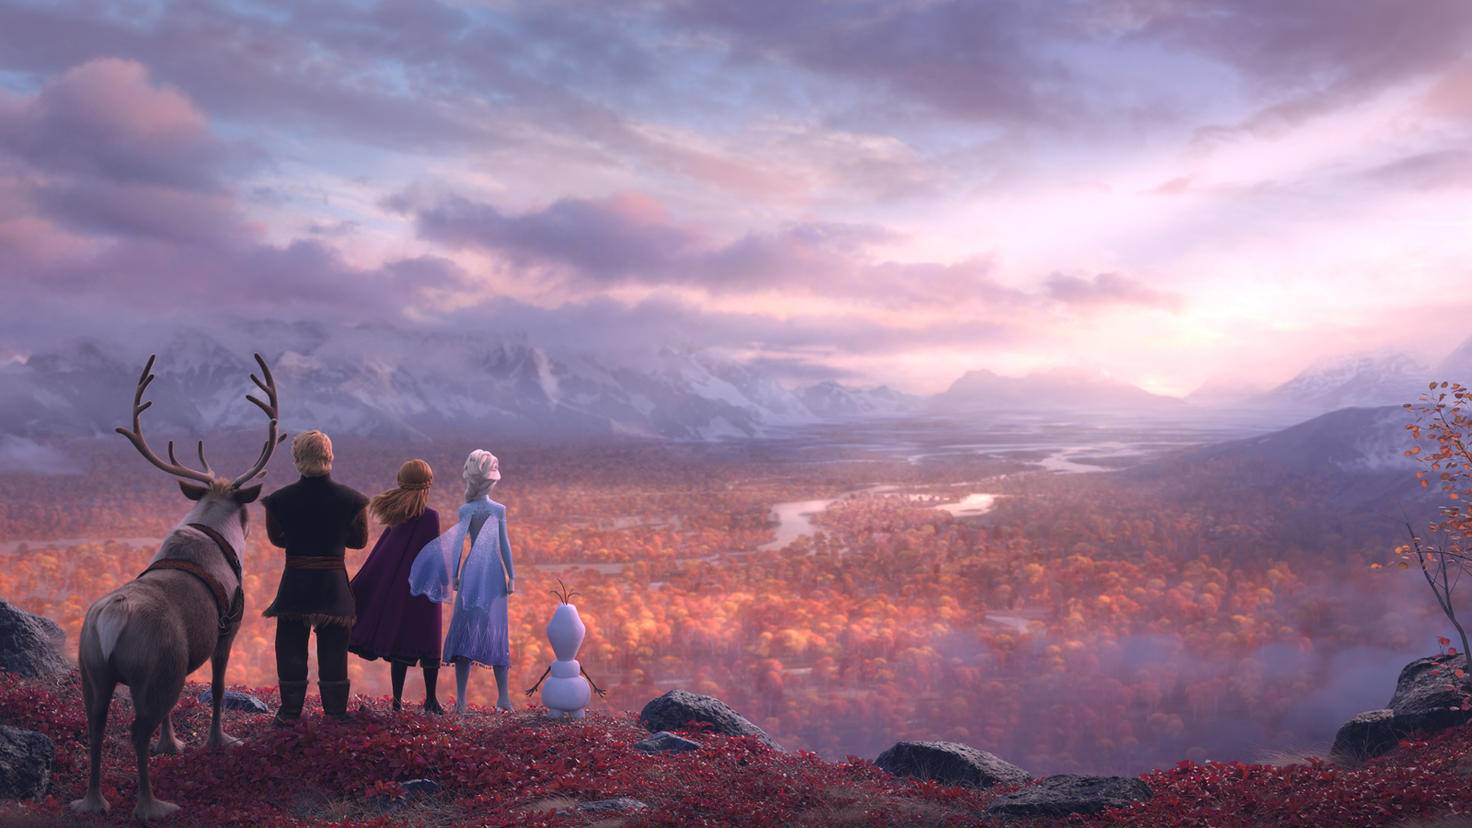 What awaits Anna, Elsa and Co. in their latest adventure?